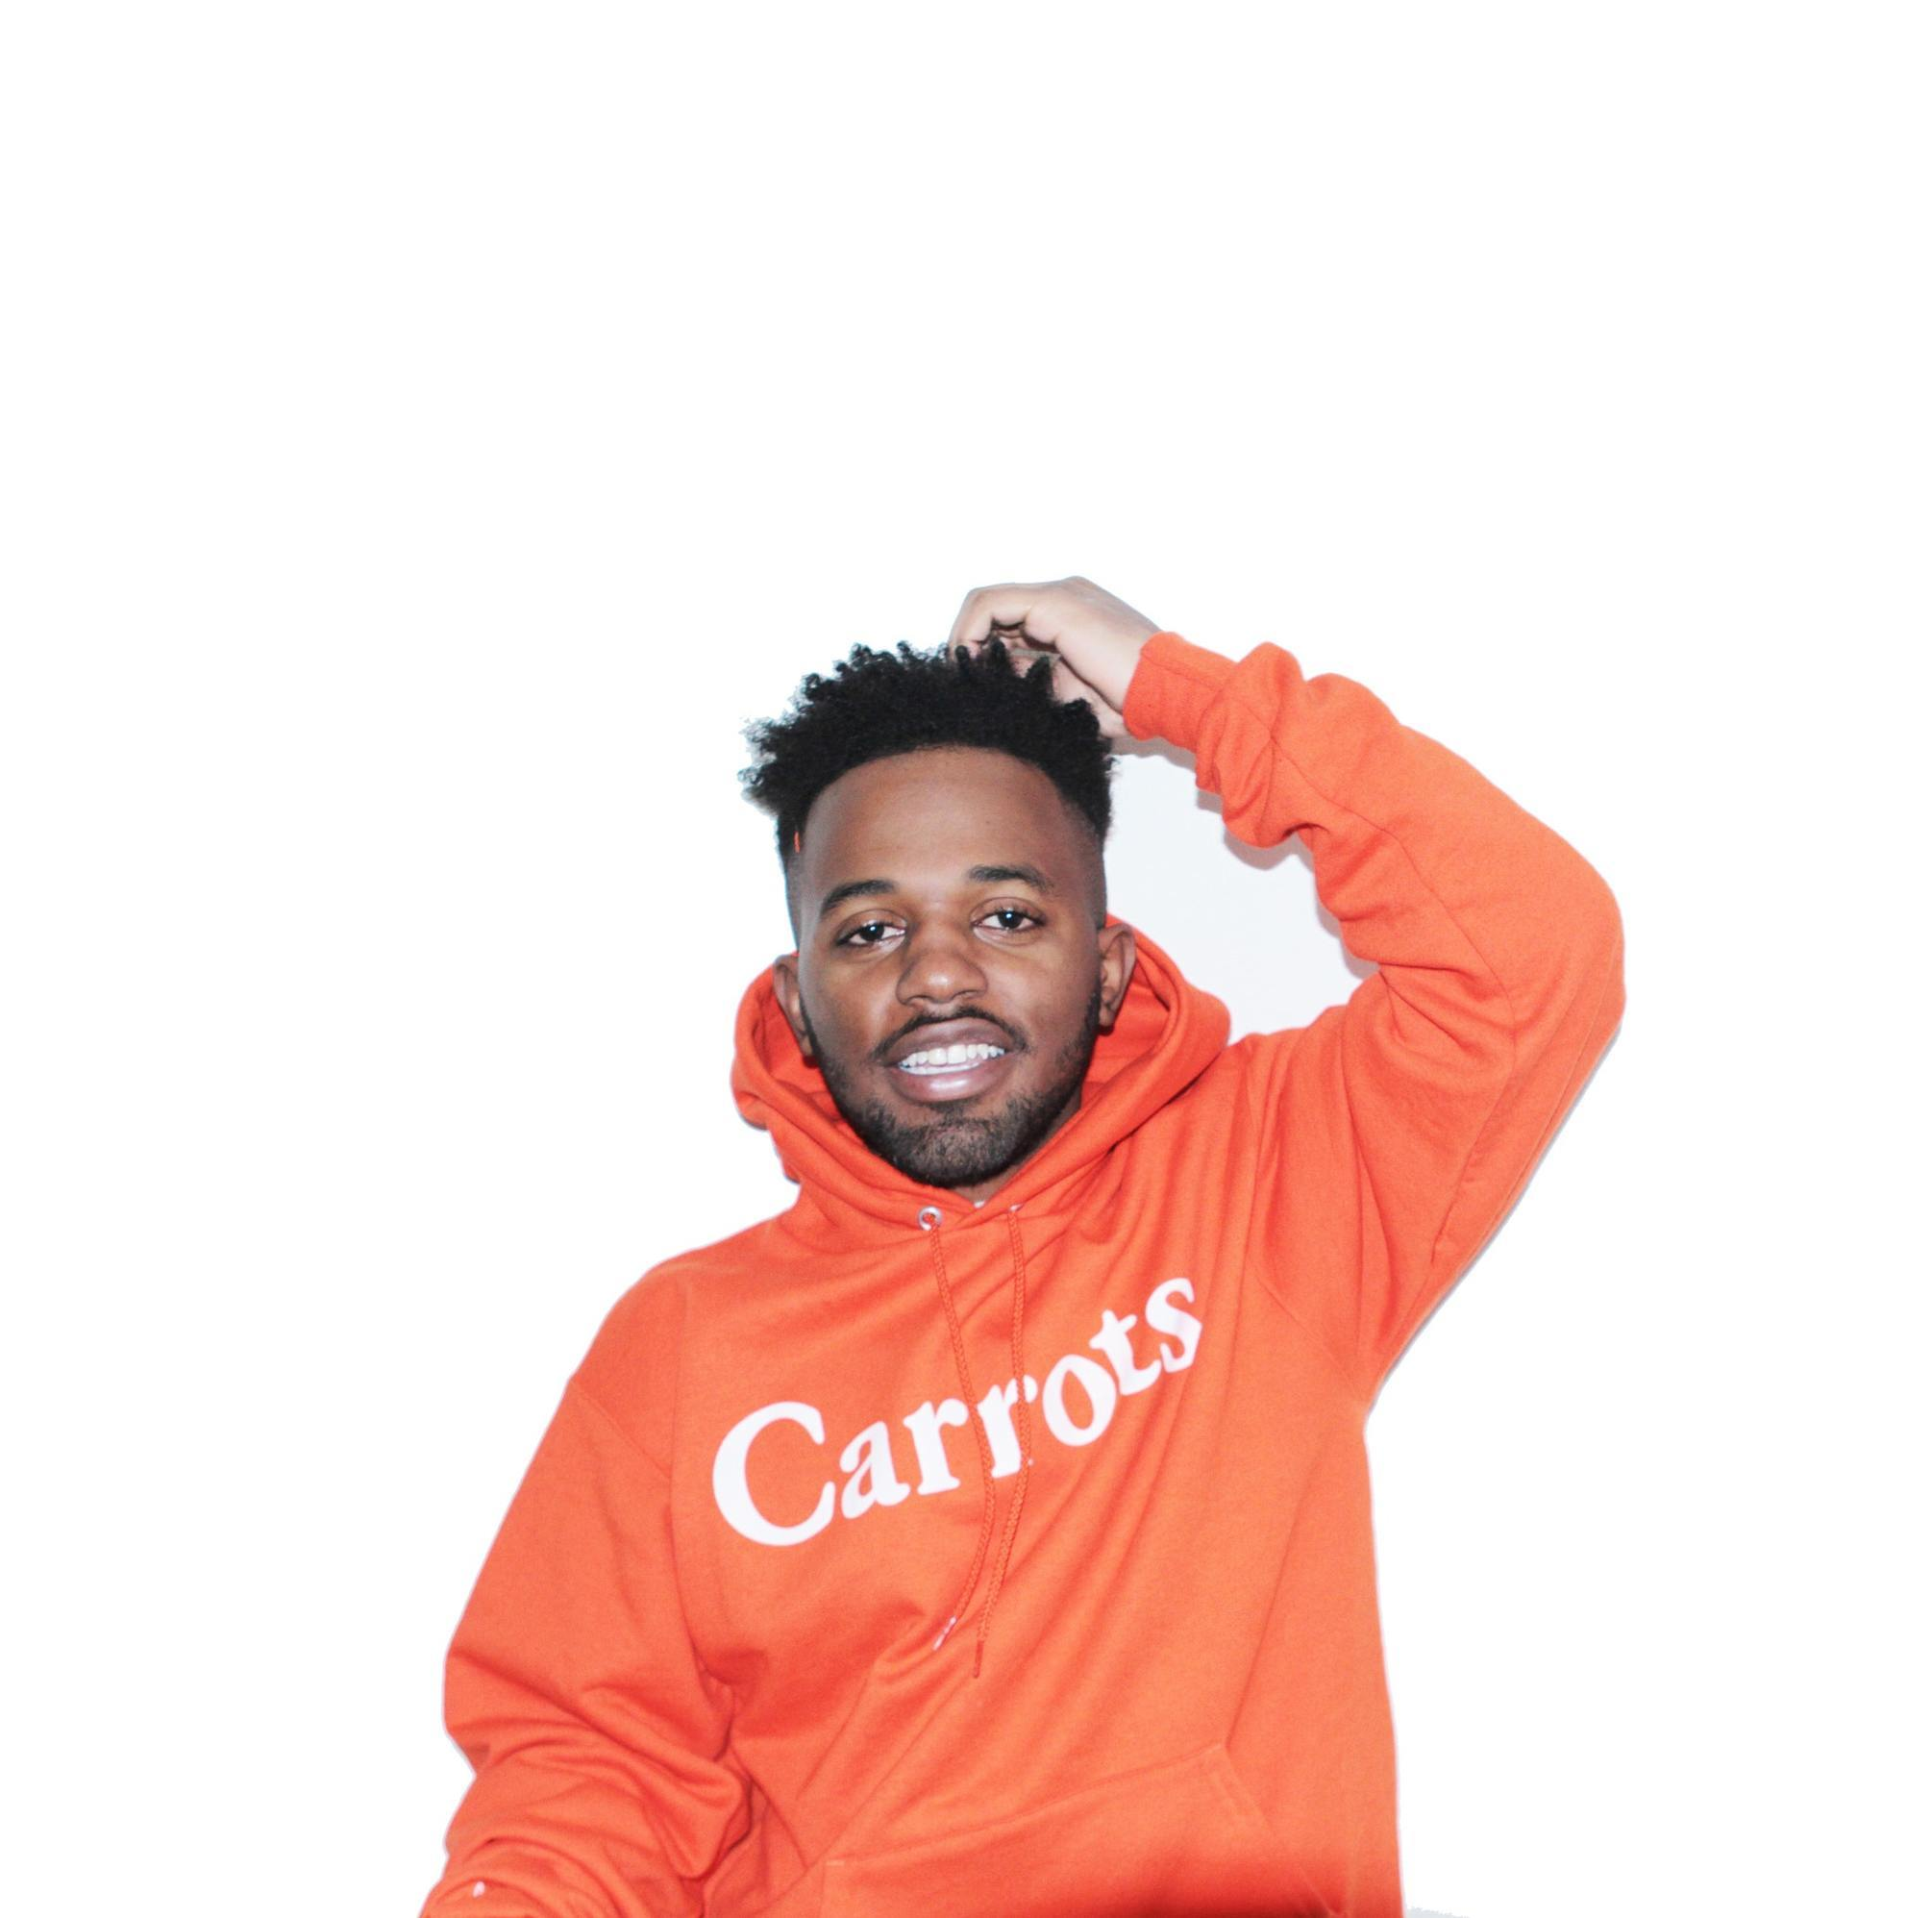 MadeinTYO wearing an orange hoody